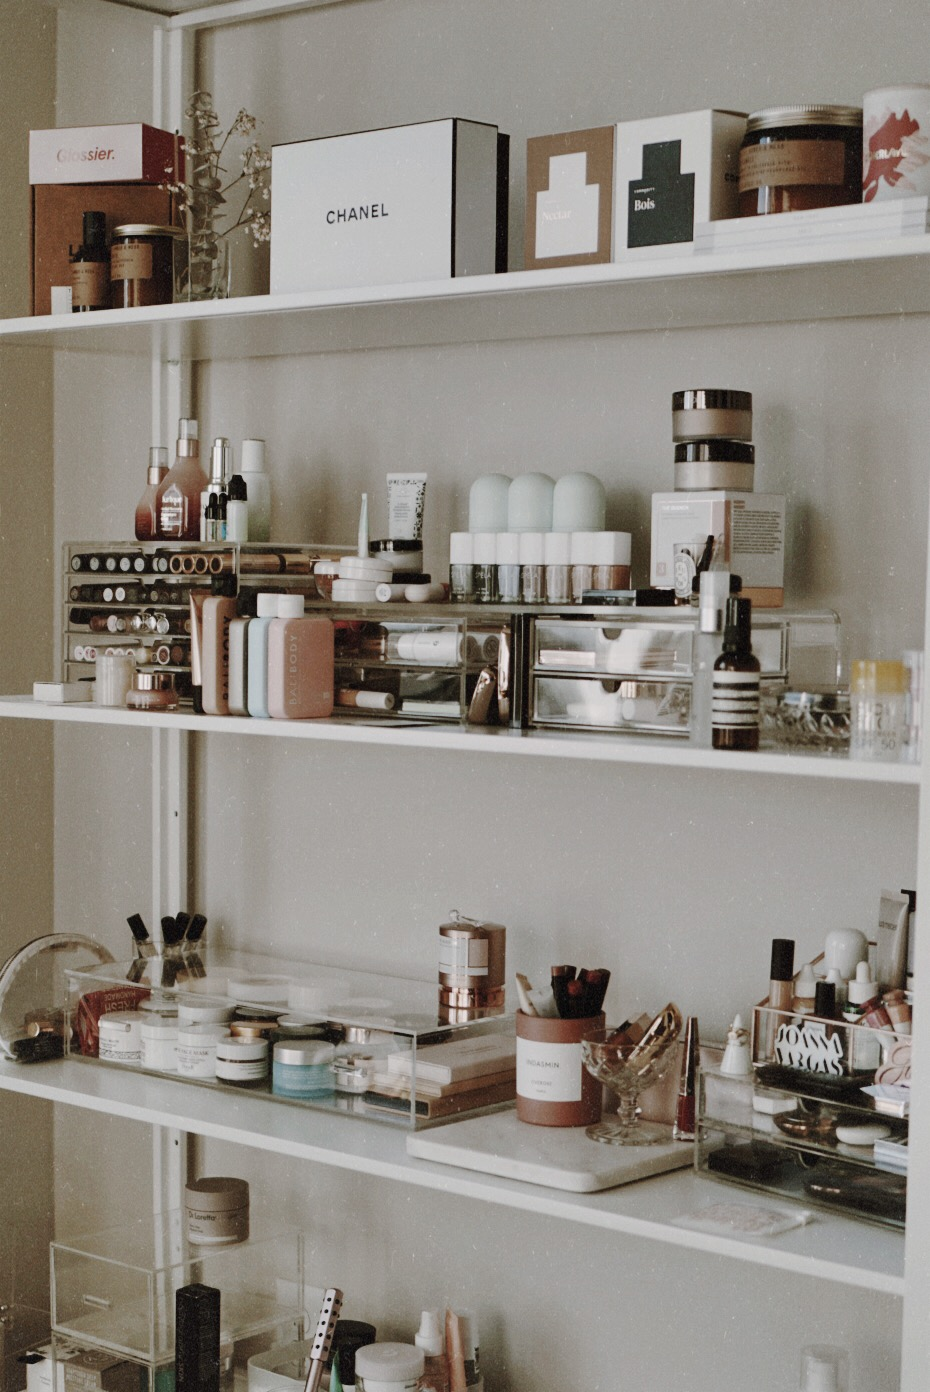 CHY Beauty Office Storage - Ikea, West Elm, The Container Store, Target